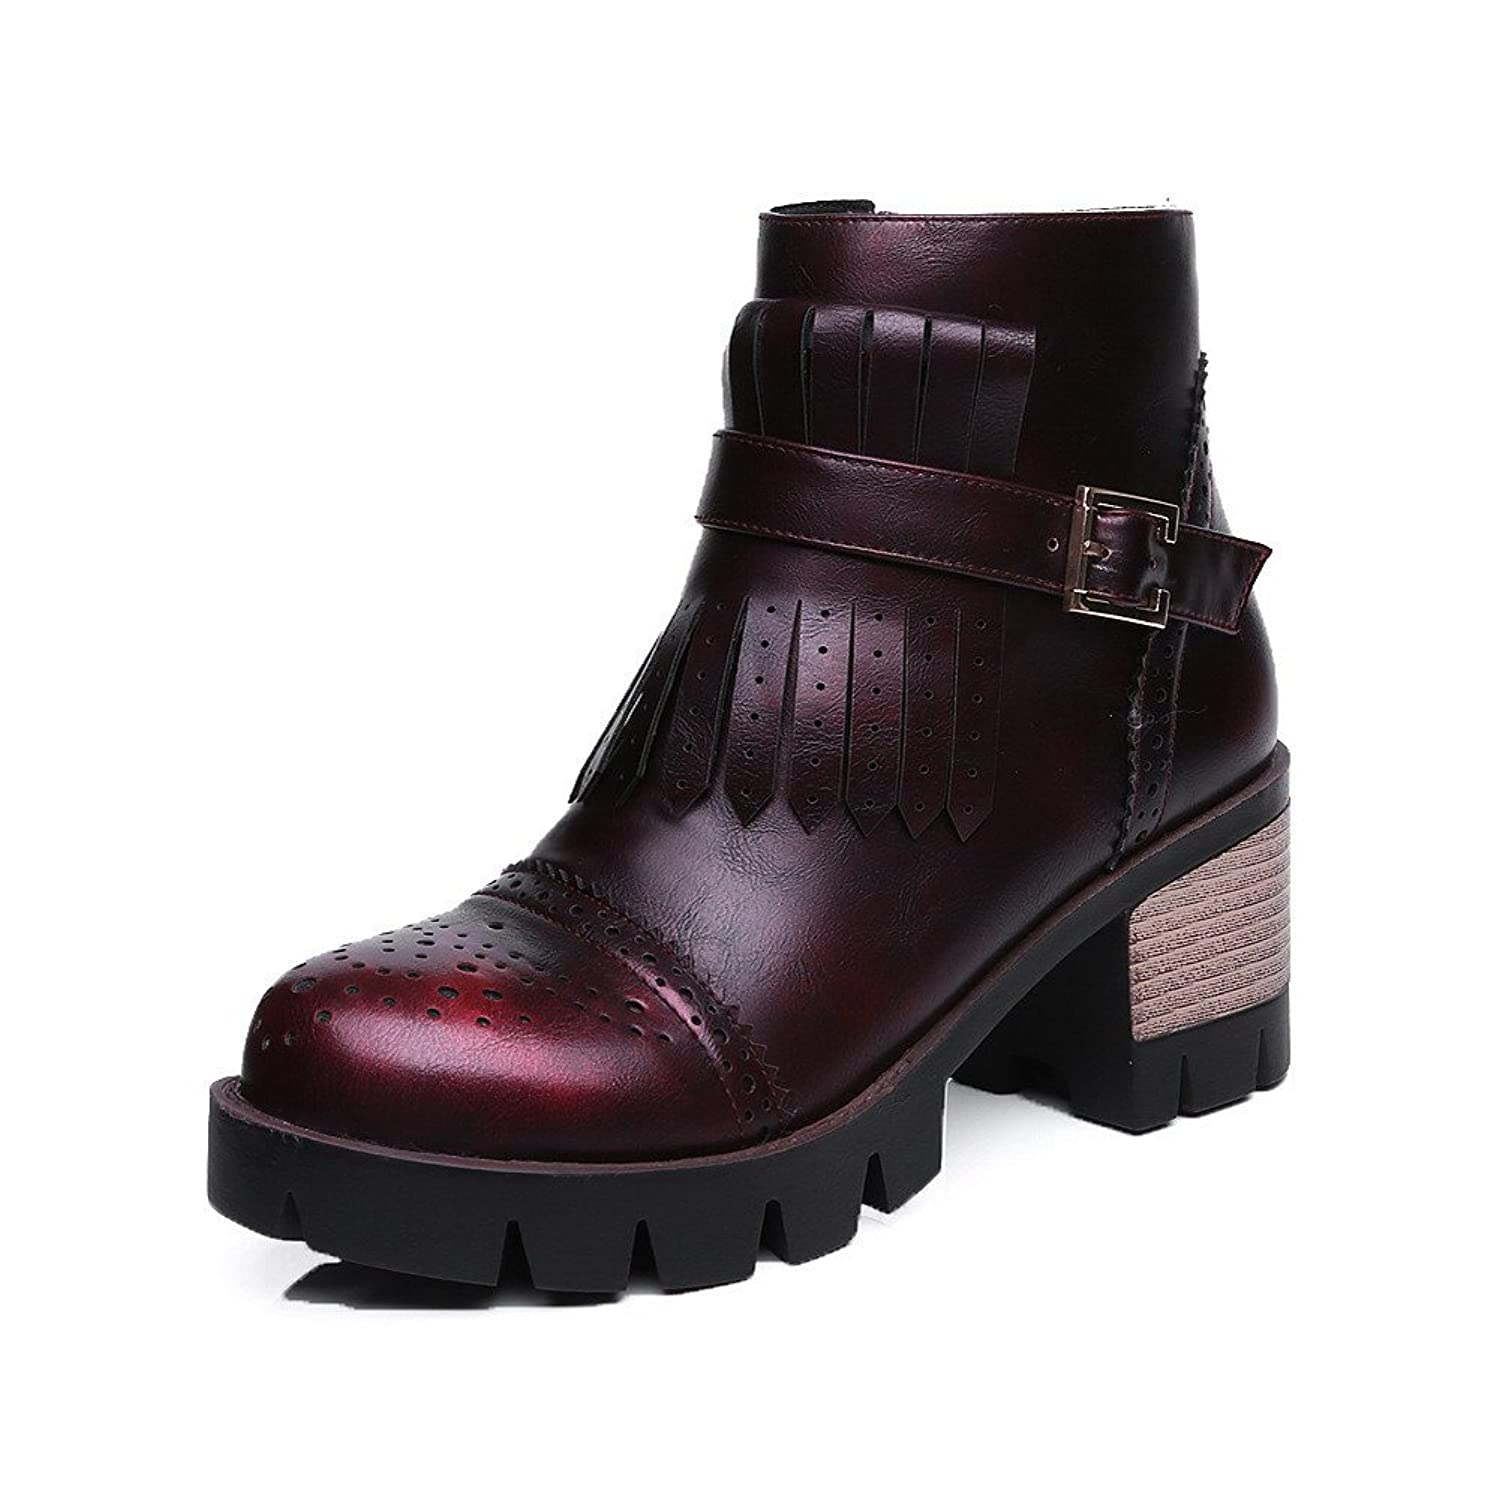 AllhqFashion Women's Soft Material Round Closed Toe Solid Low-Top Kitten-Heels Boots